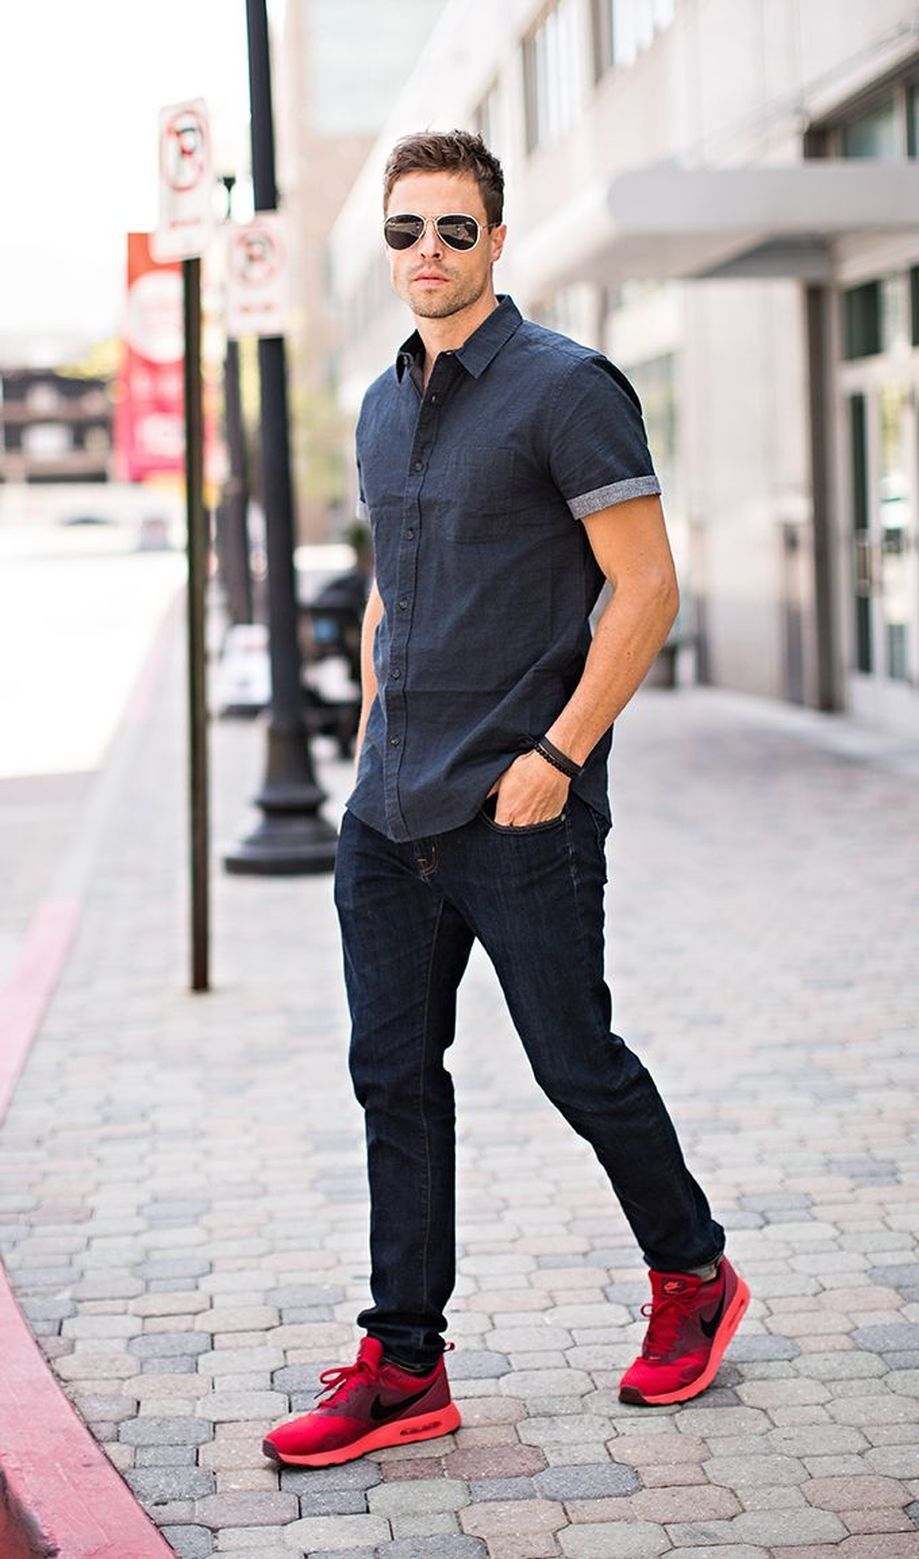 Cool Casual Men's Fashions Summer Outfits Ideas 56